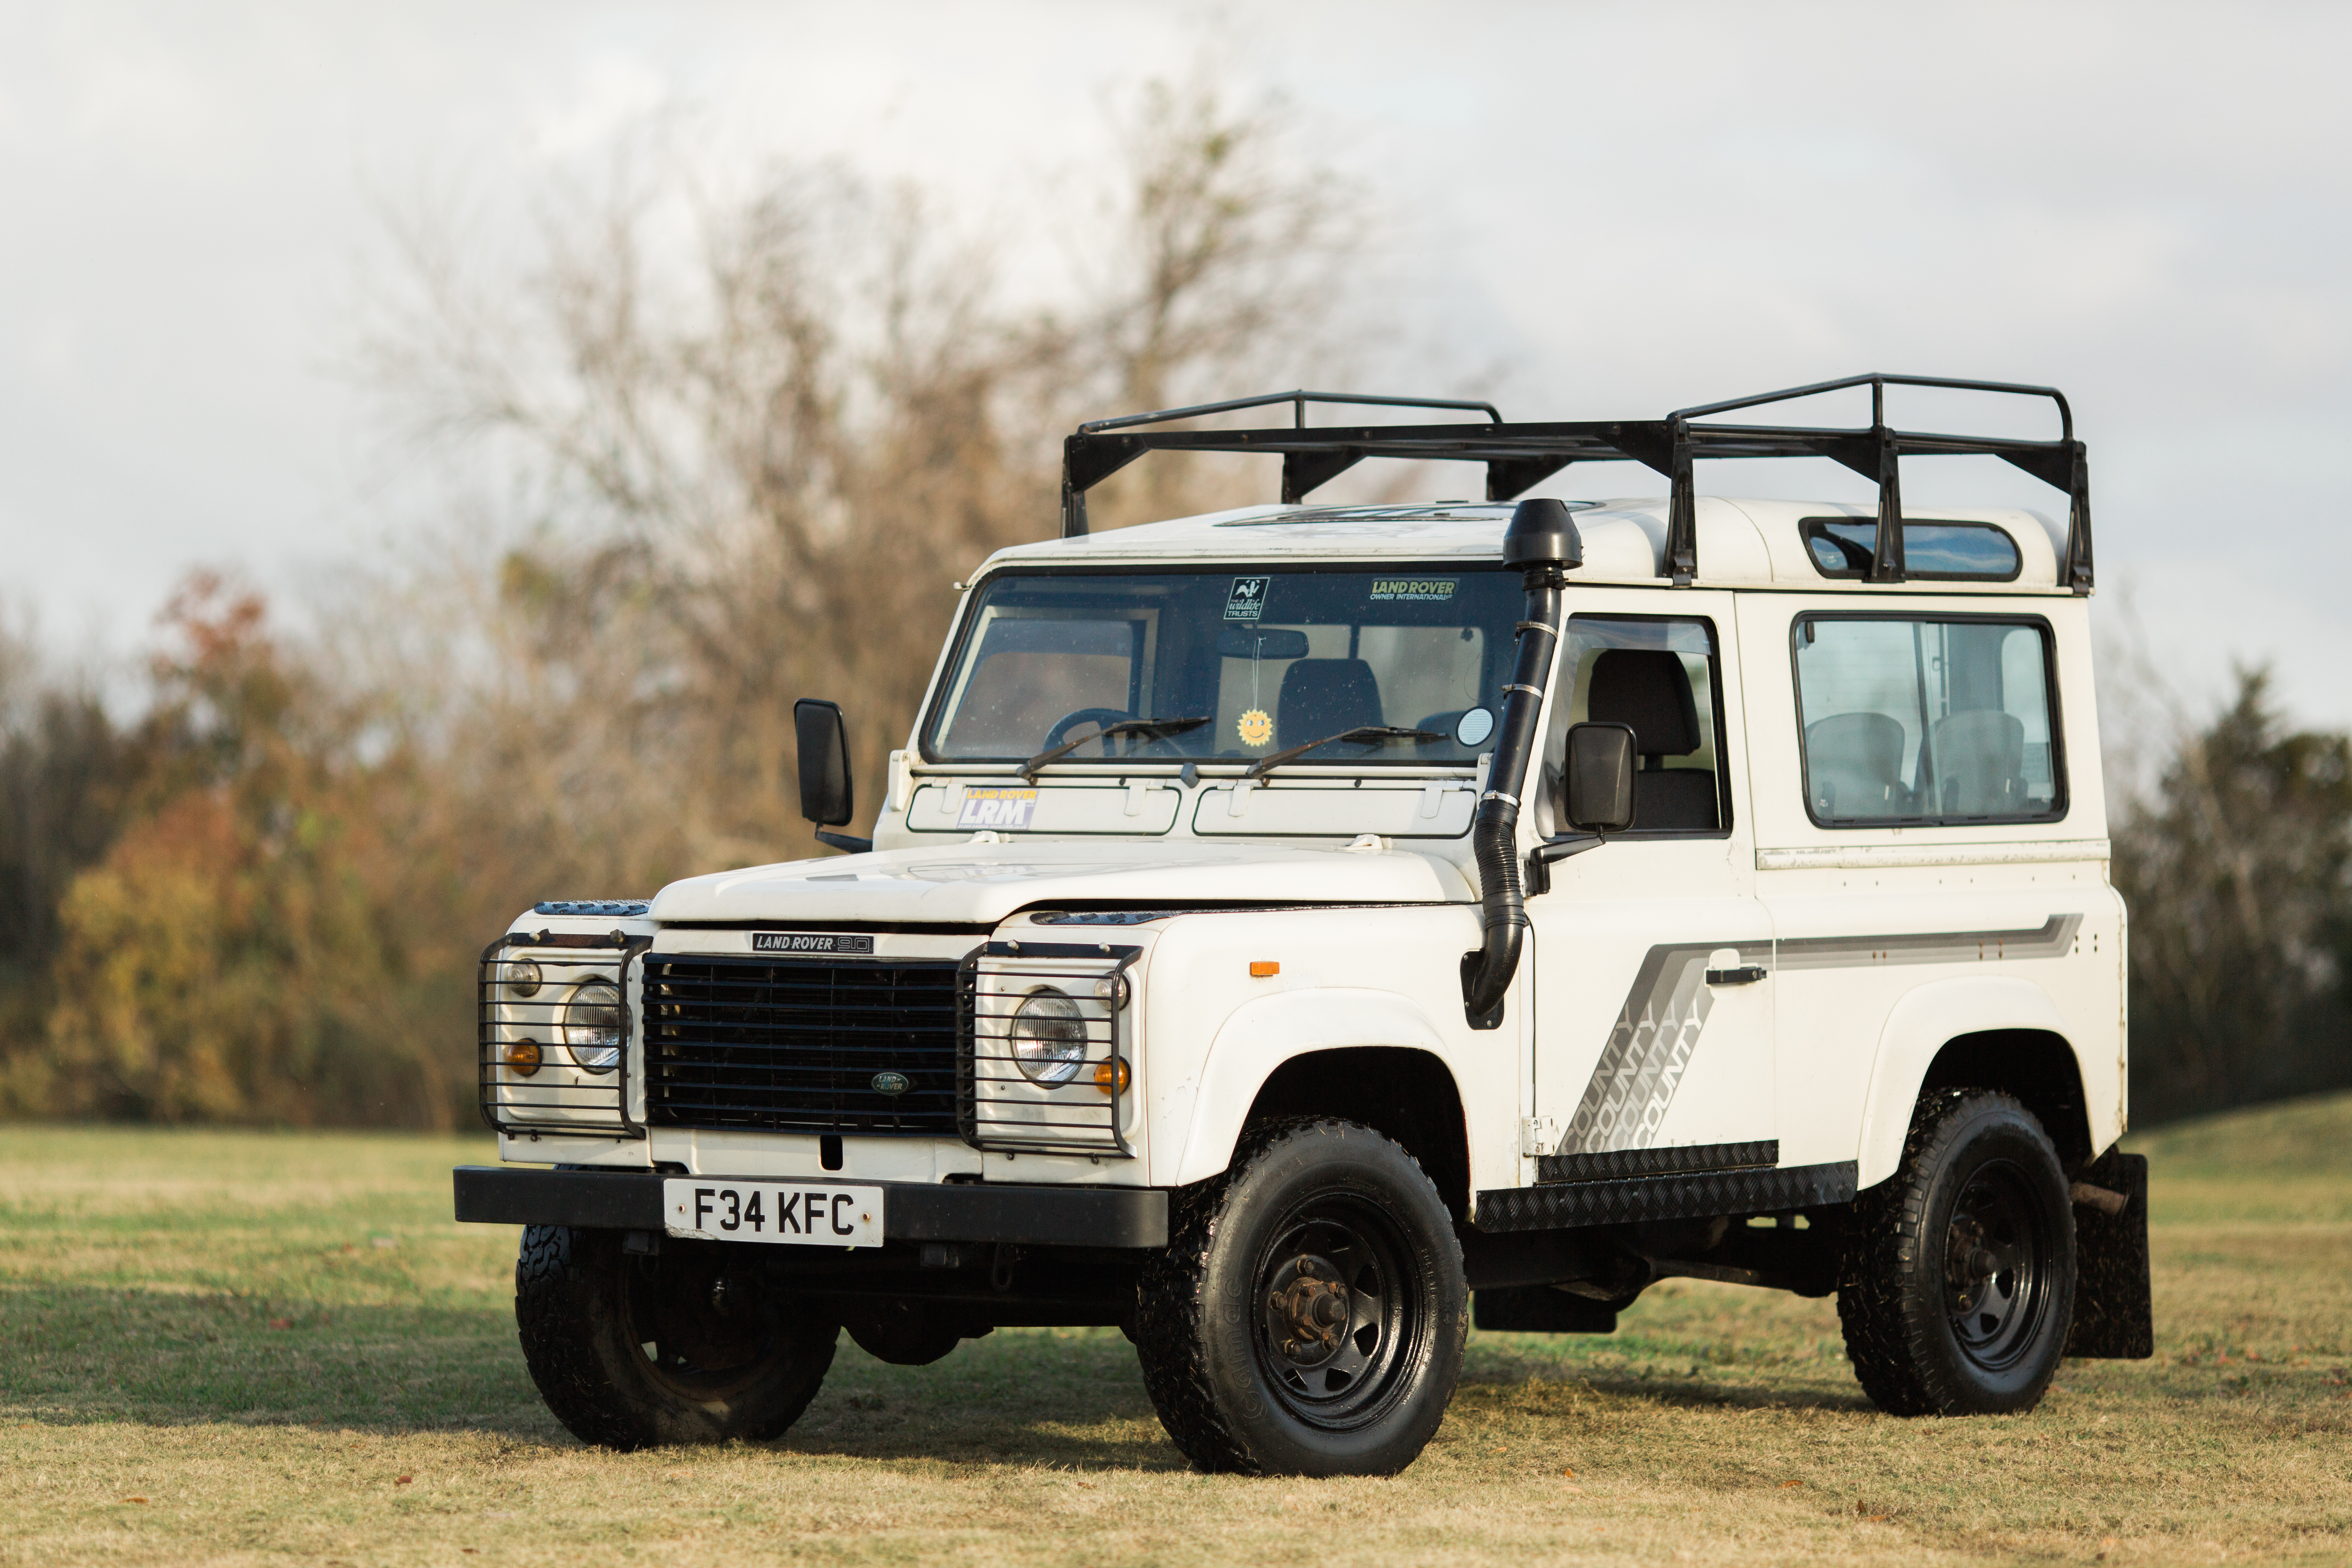 County SW Land Rover Defender 90